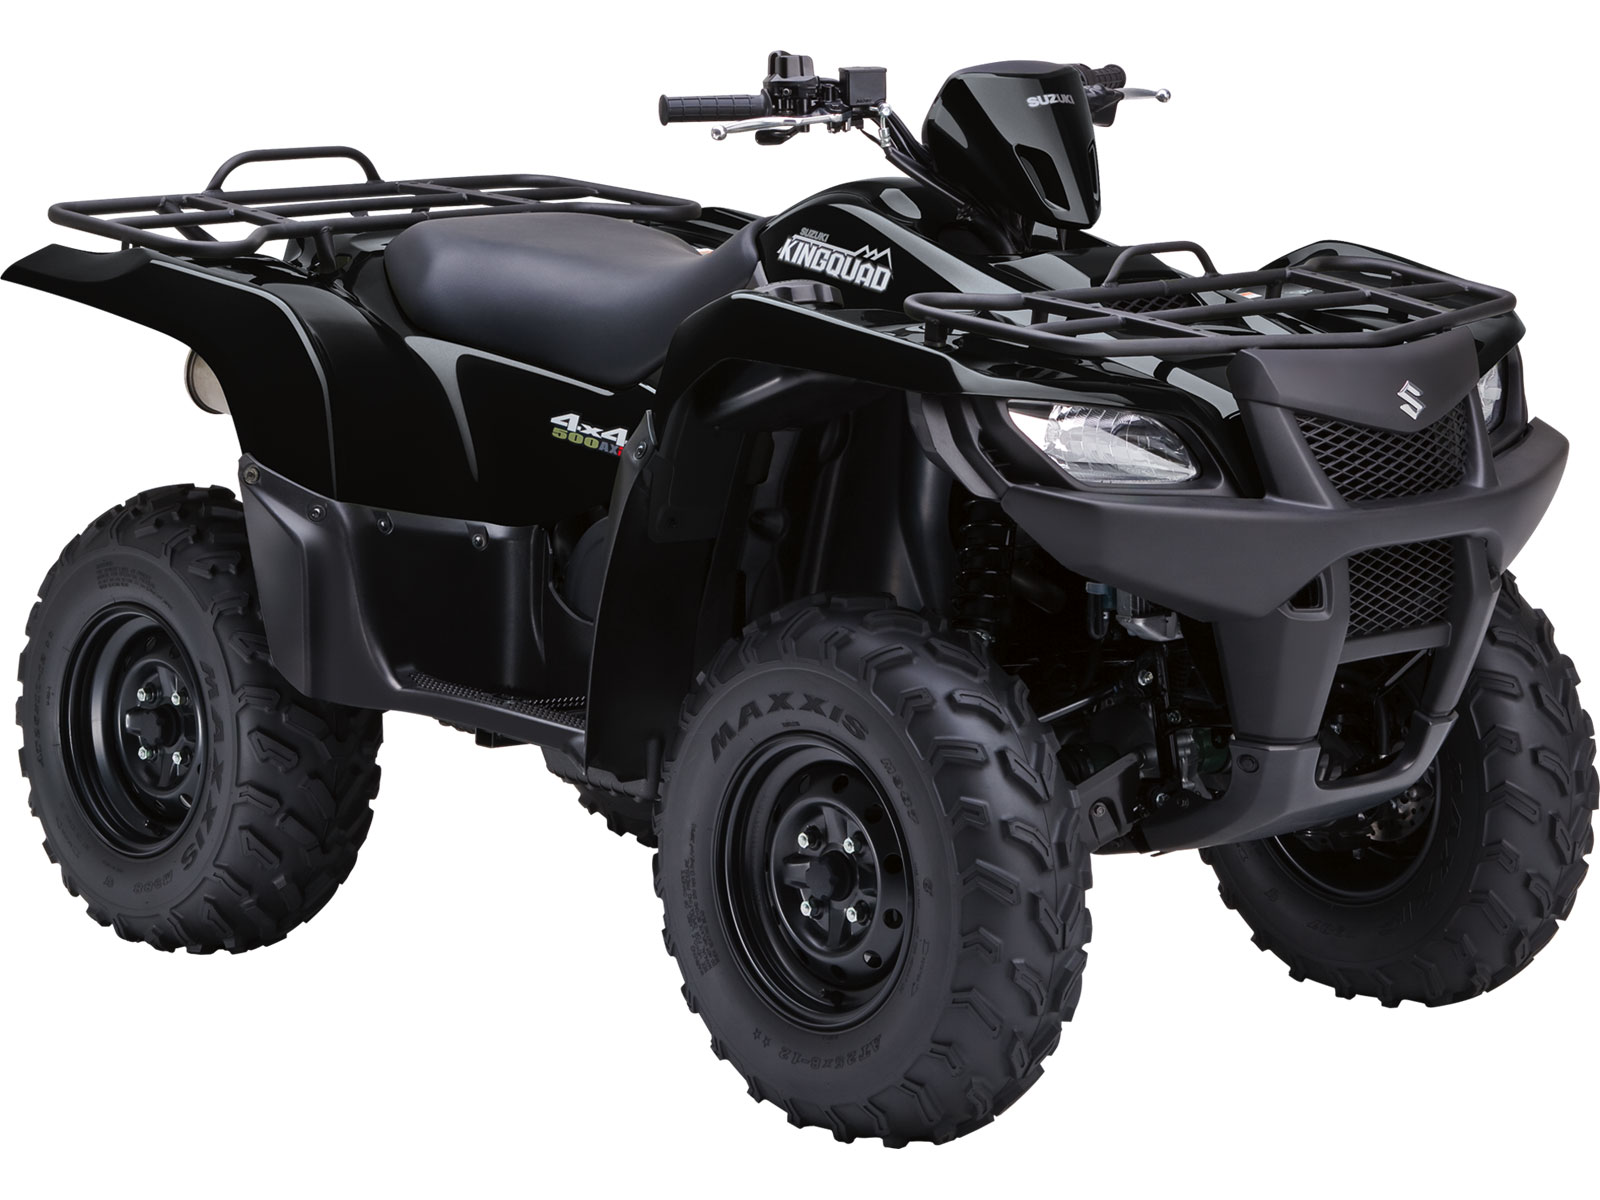 suzuki kingquad 500axi specs 2010 2011 autoevolution. Black Bedroom Furniture Sets. Home Design Ideas